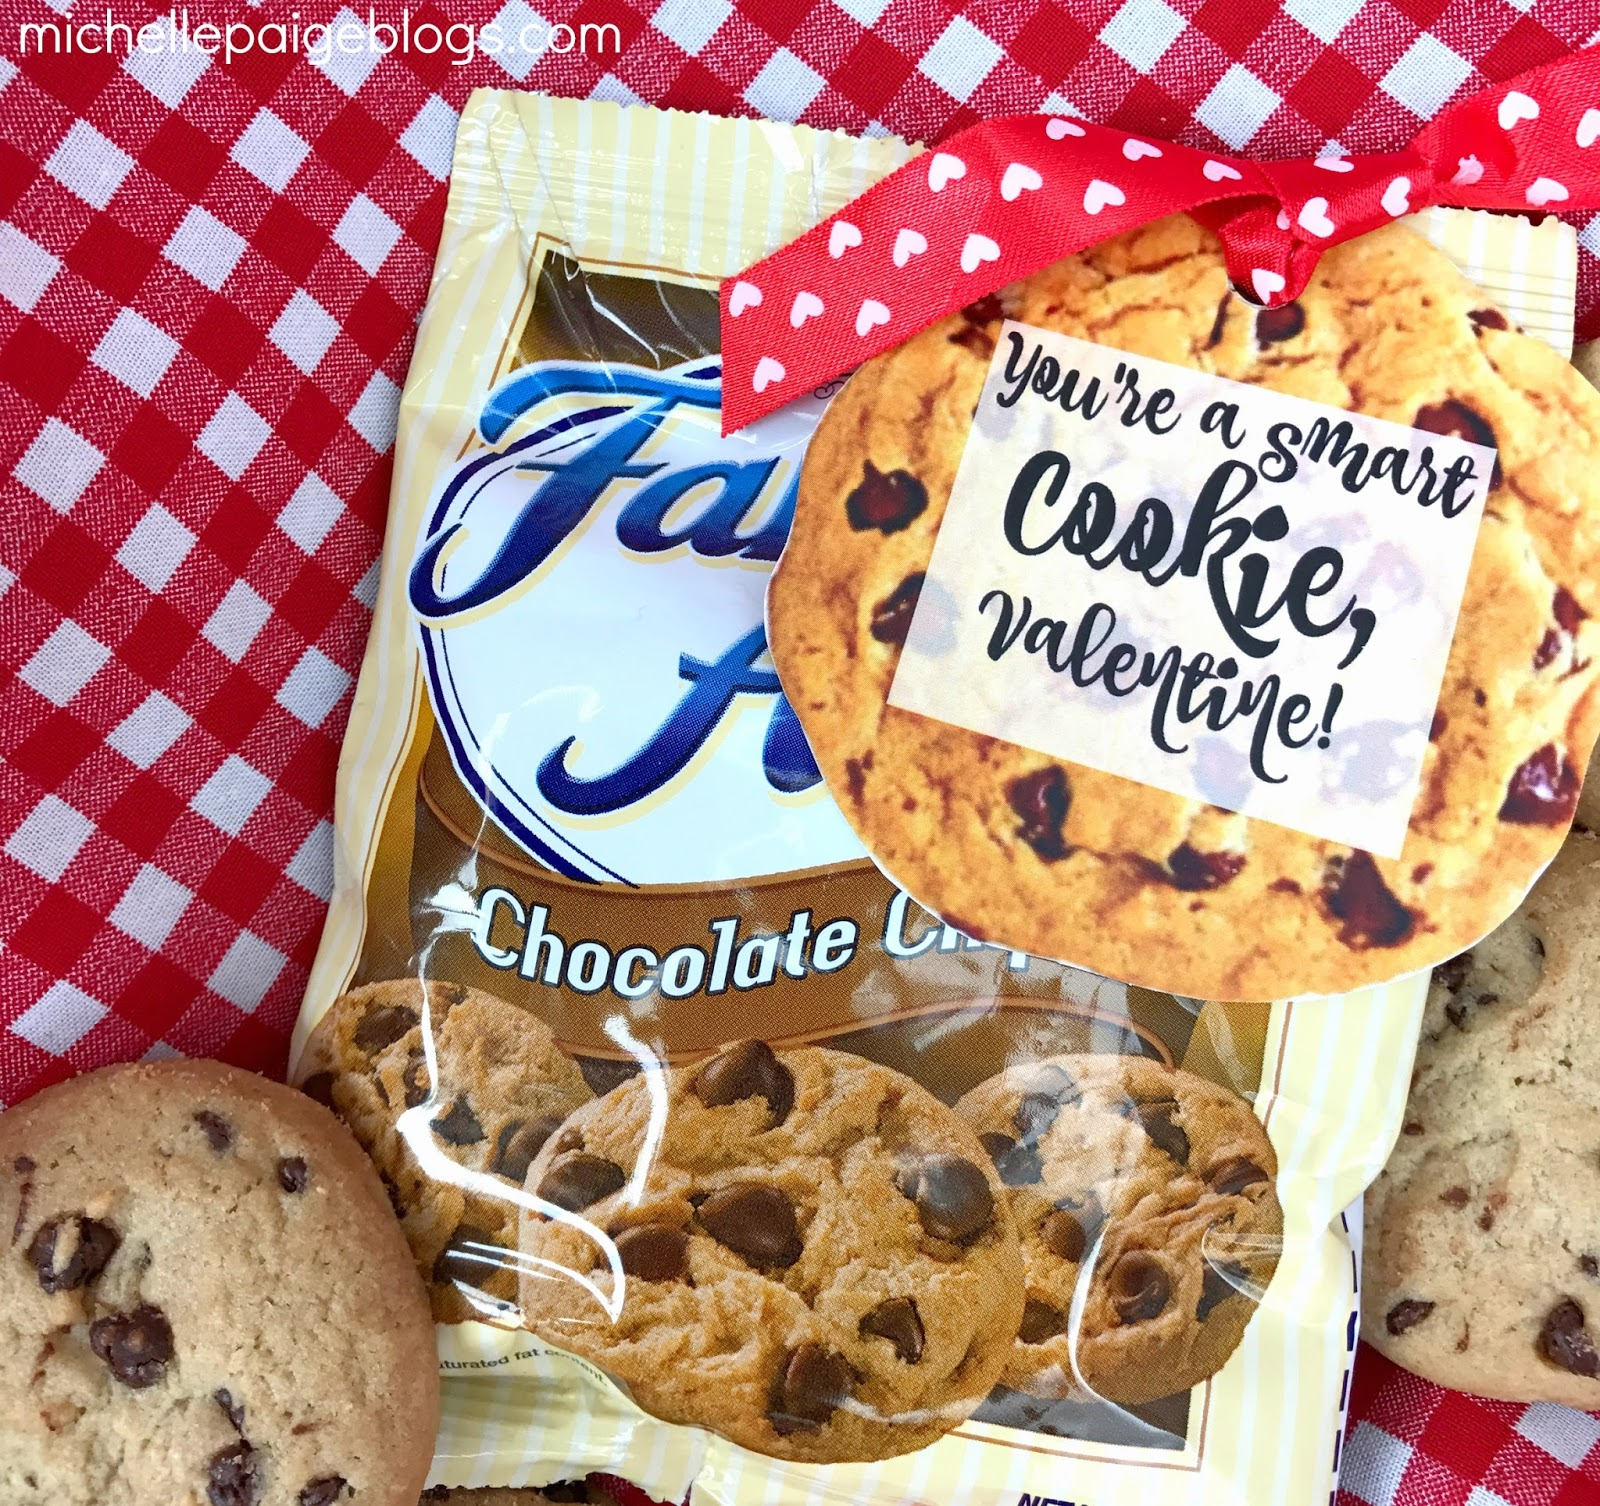 Michelle Paige Blogs Chocolate Chip Cookie Valentines